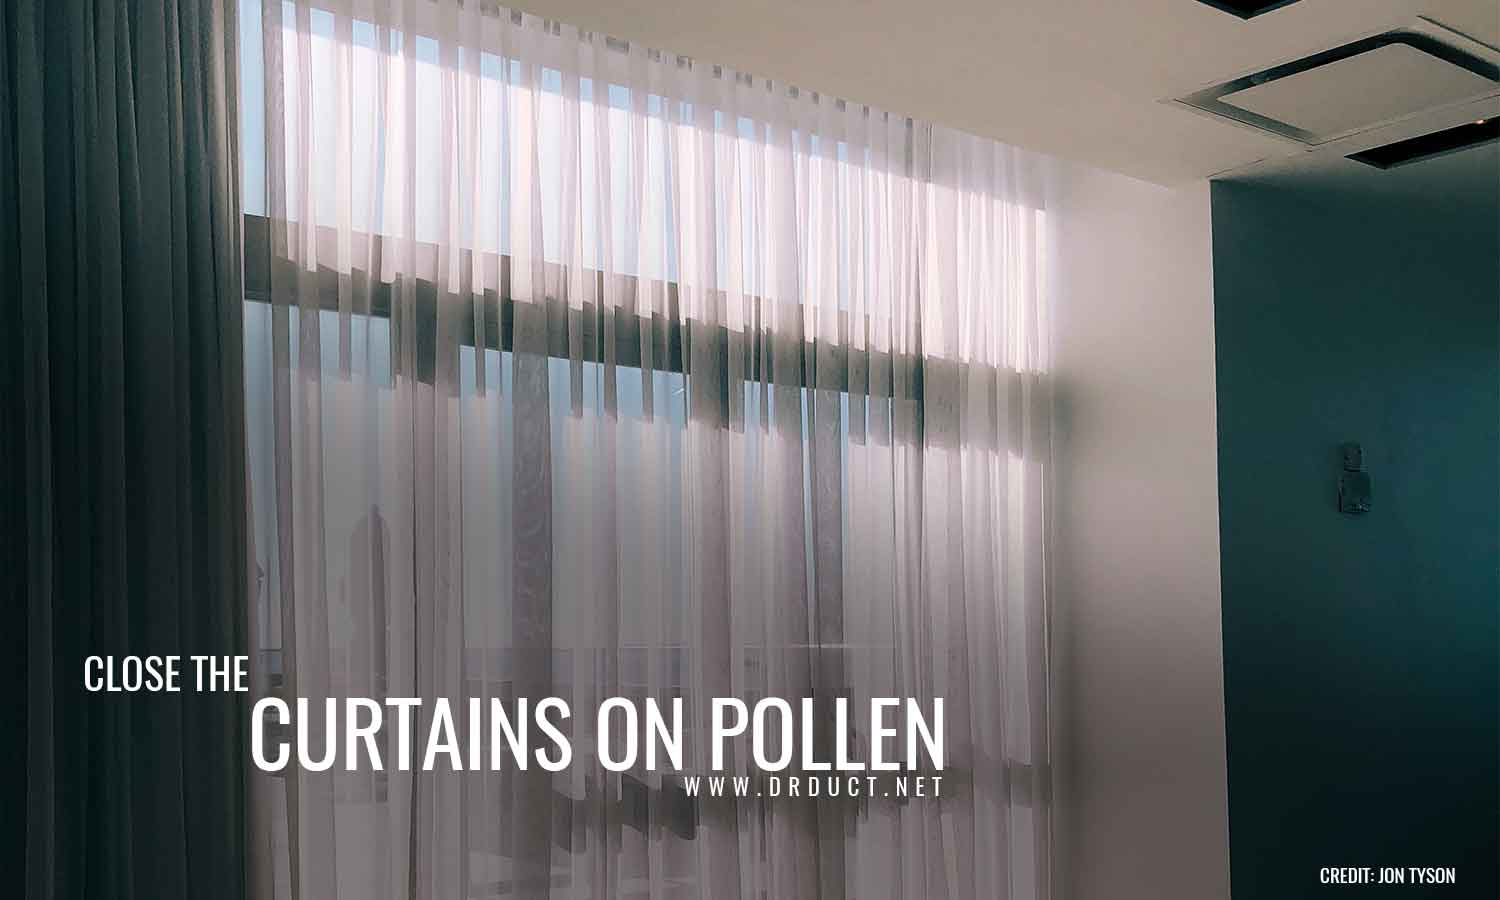 Close the curtains on pollen